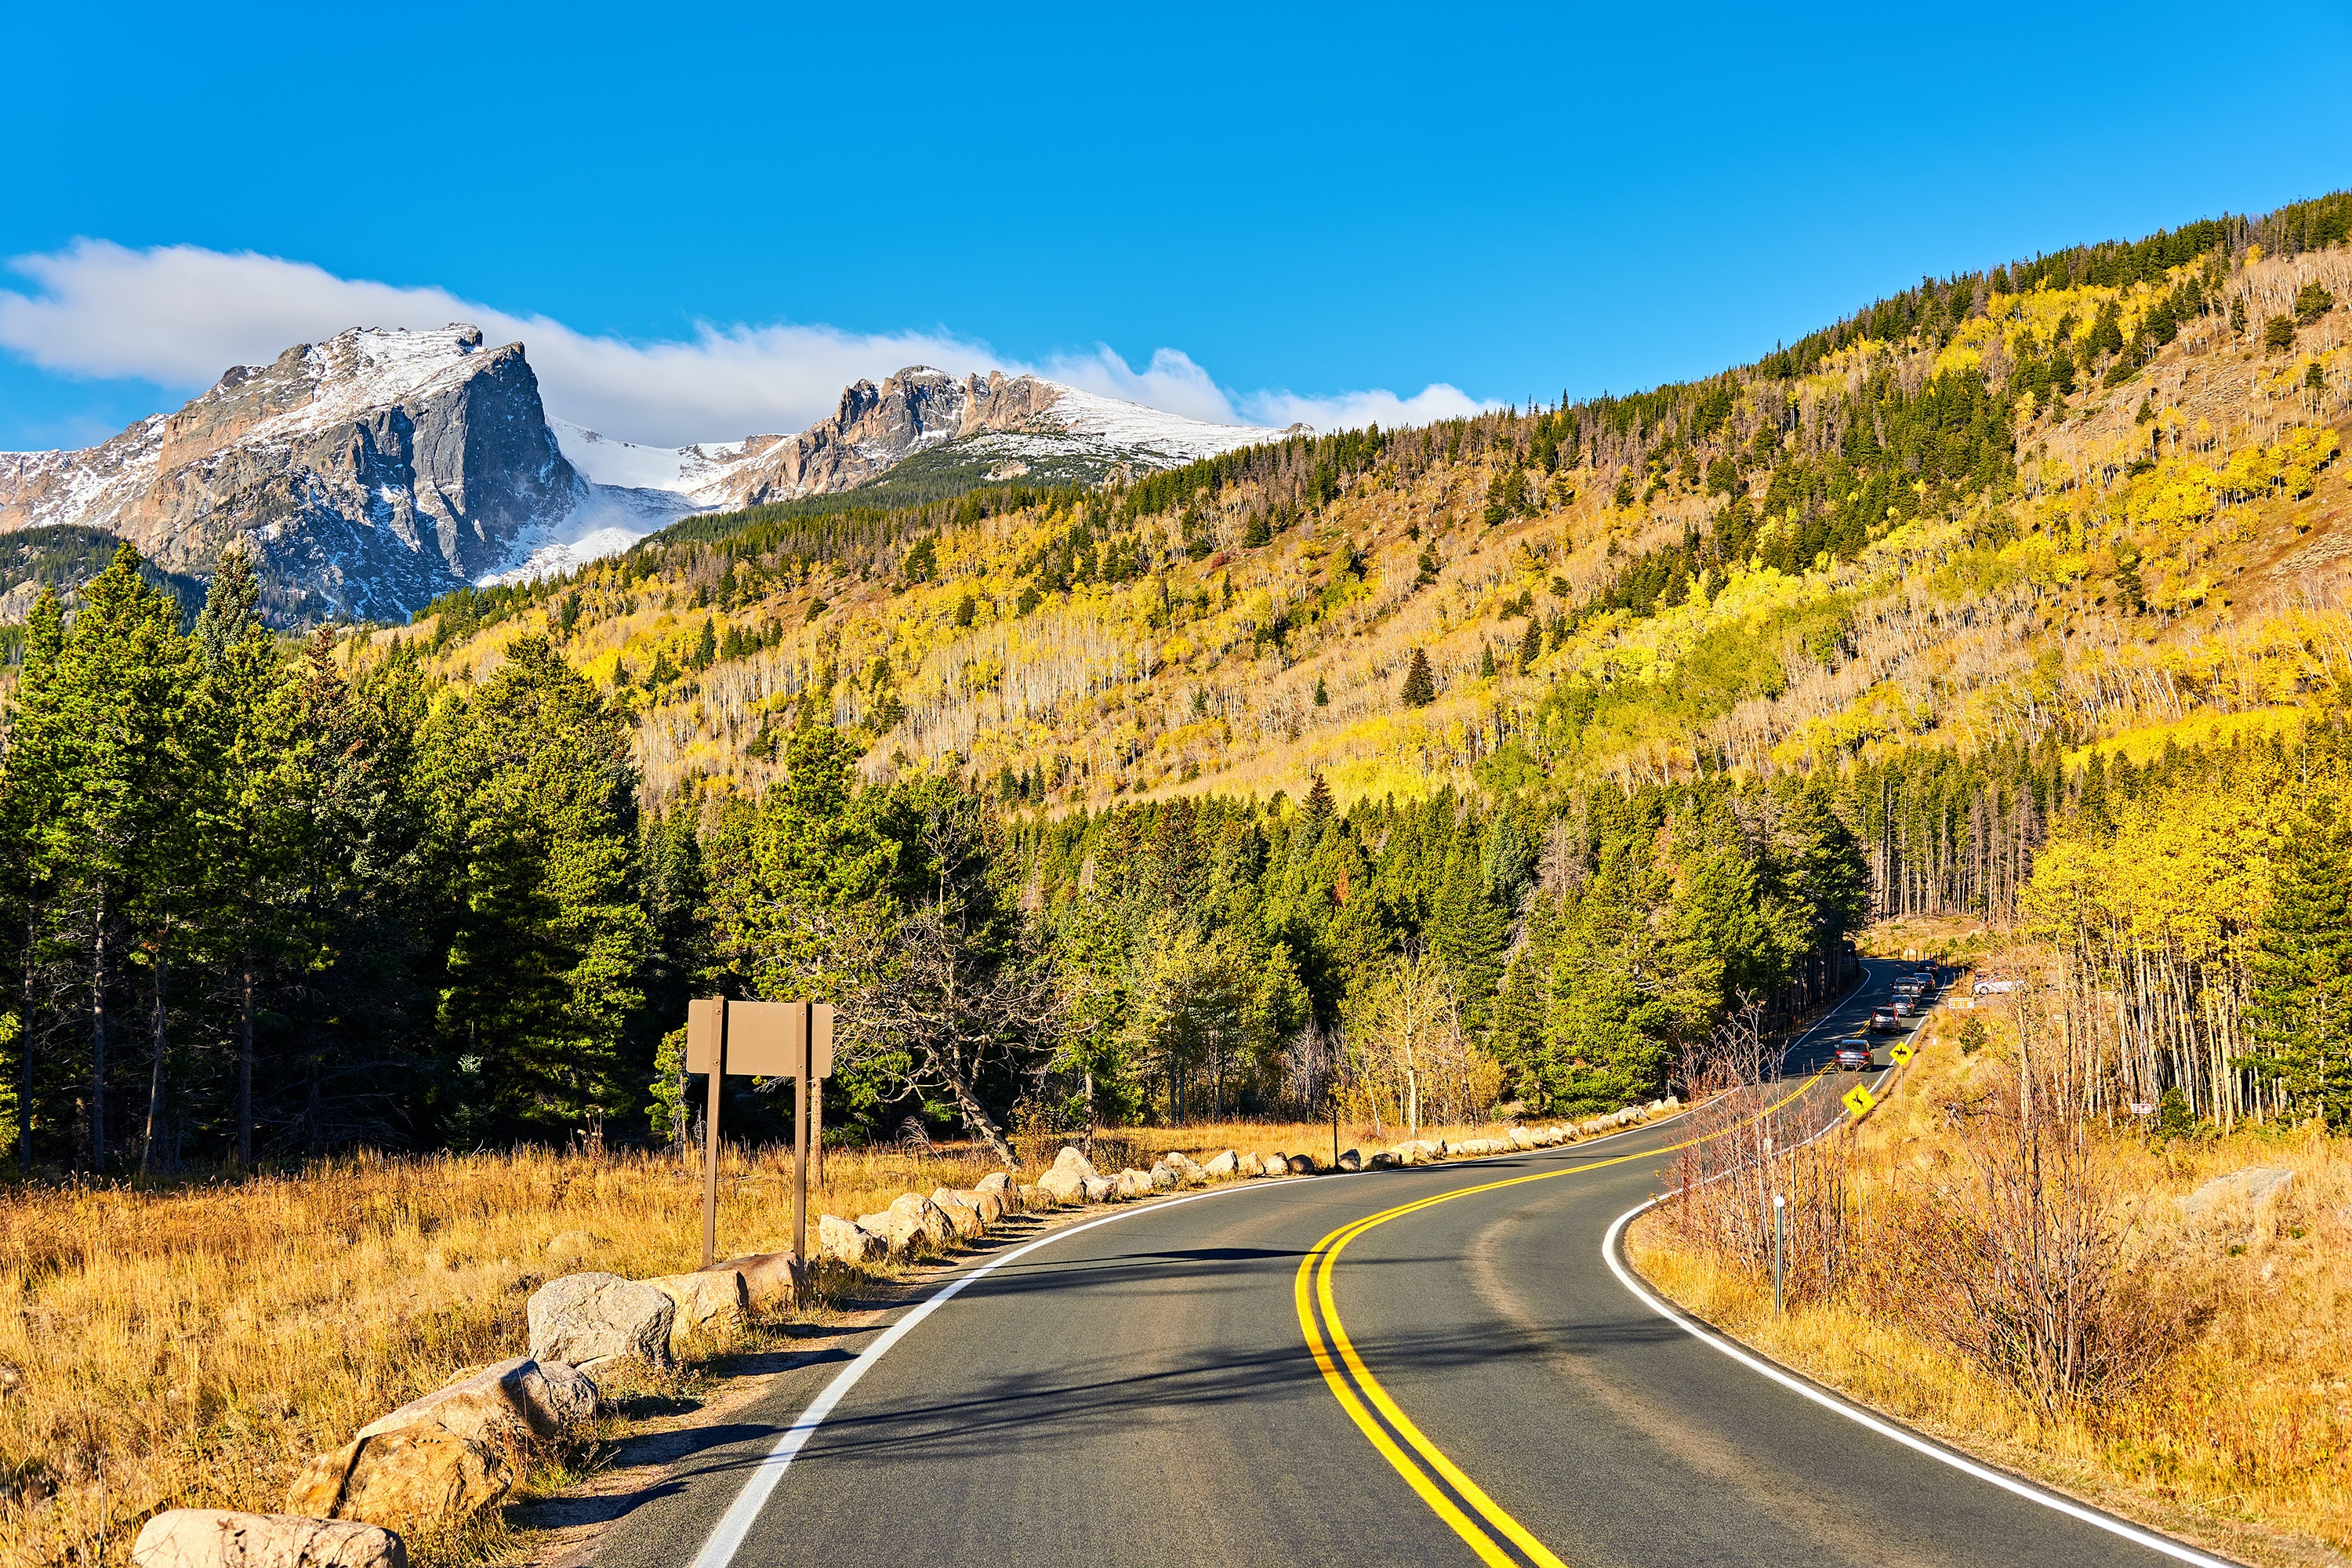 Groves of aspen in Rocky Mountain National Park glow yellow and orange in the fall.